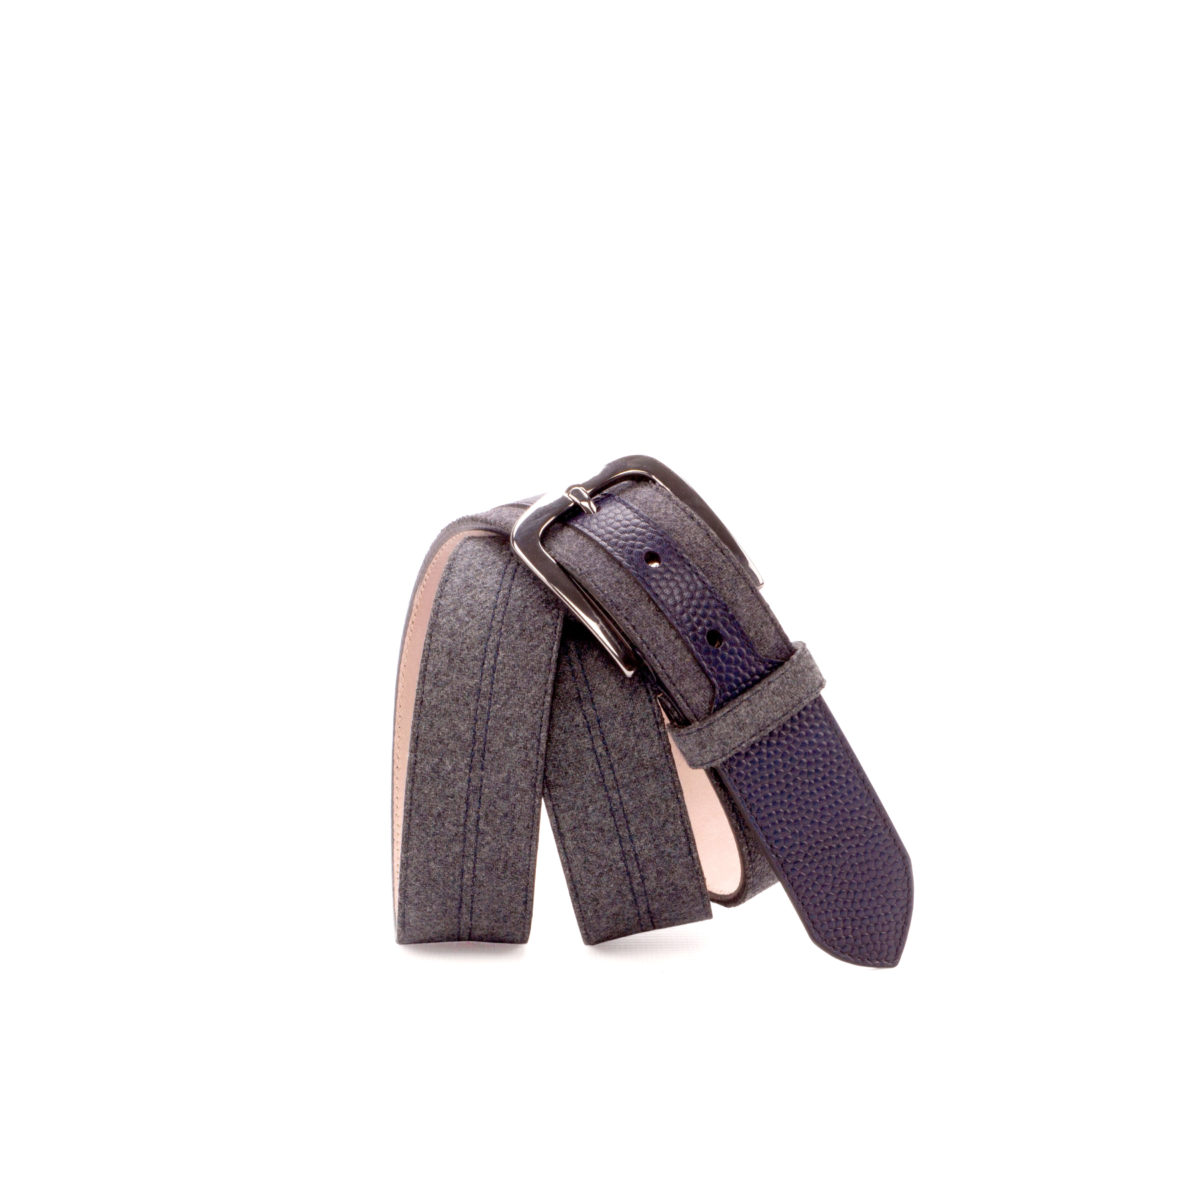 Bottom view of model Athania, navy blue painted pebble grain, flannel light grey, stone nubuck, graphite buckle Golf BespokeShoes